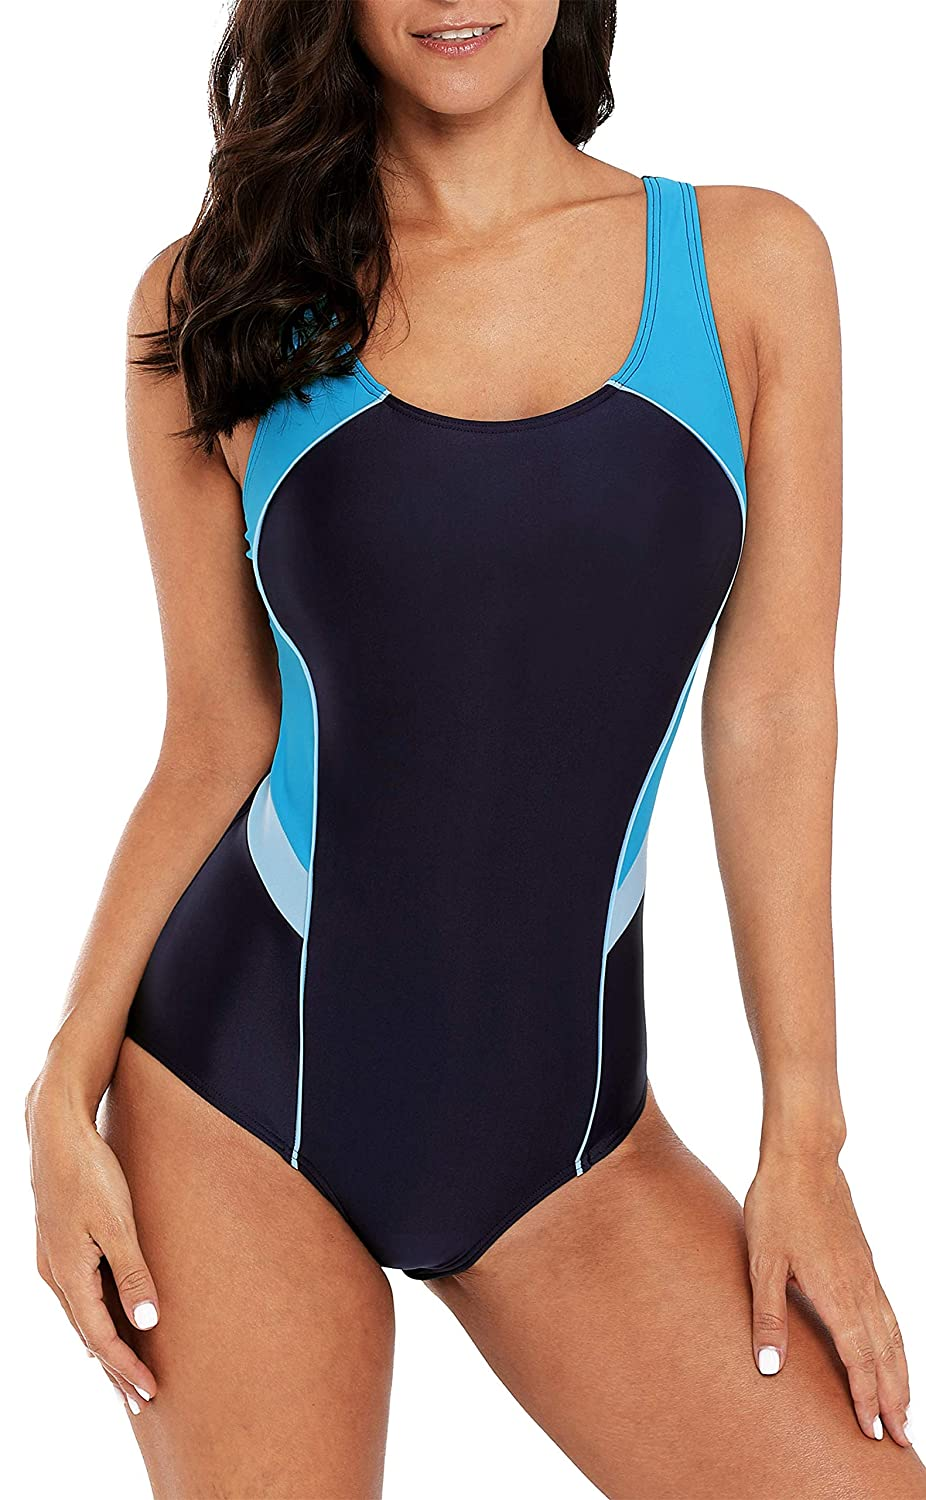 beautyin Womens Athletic One Piece Swimsuits Racerback Competitive Bathing Suit